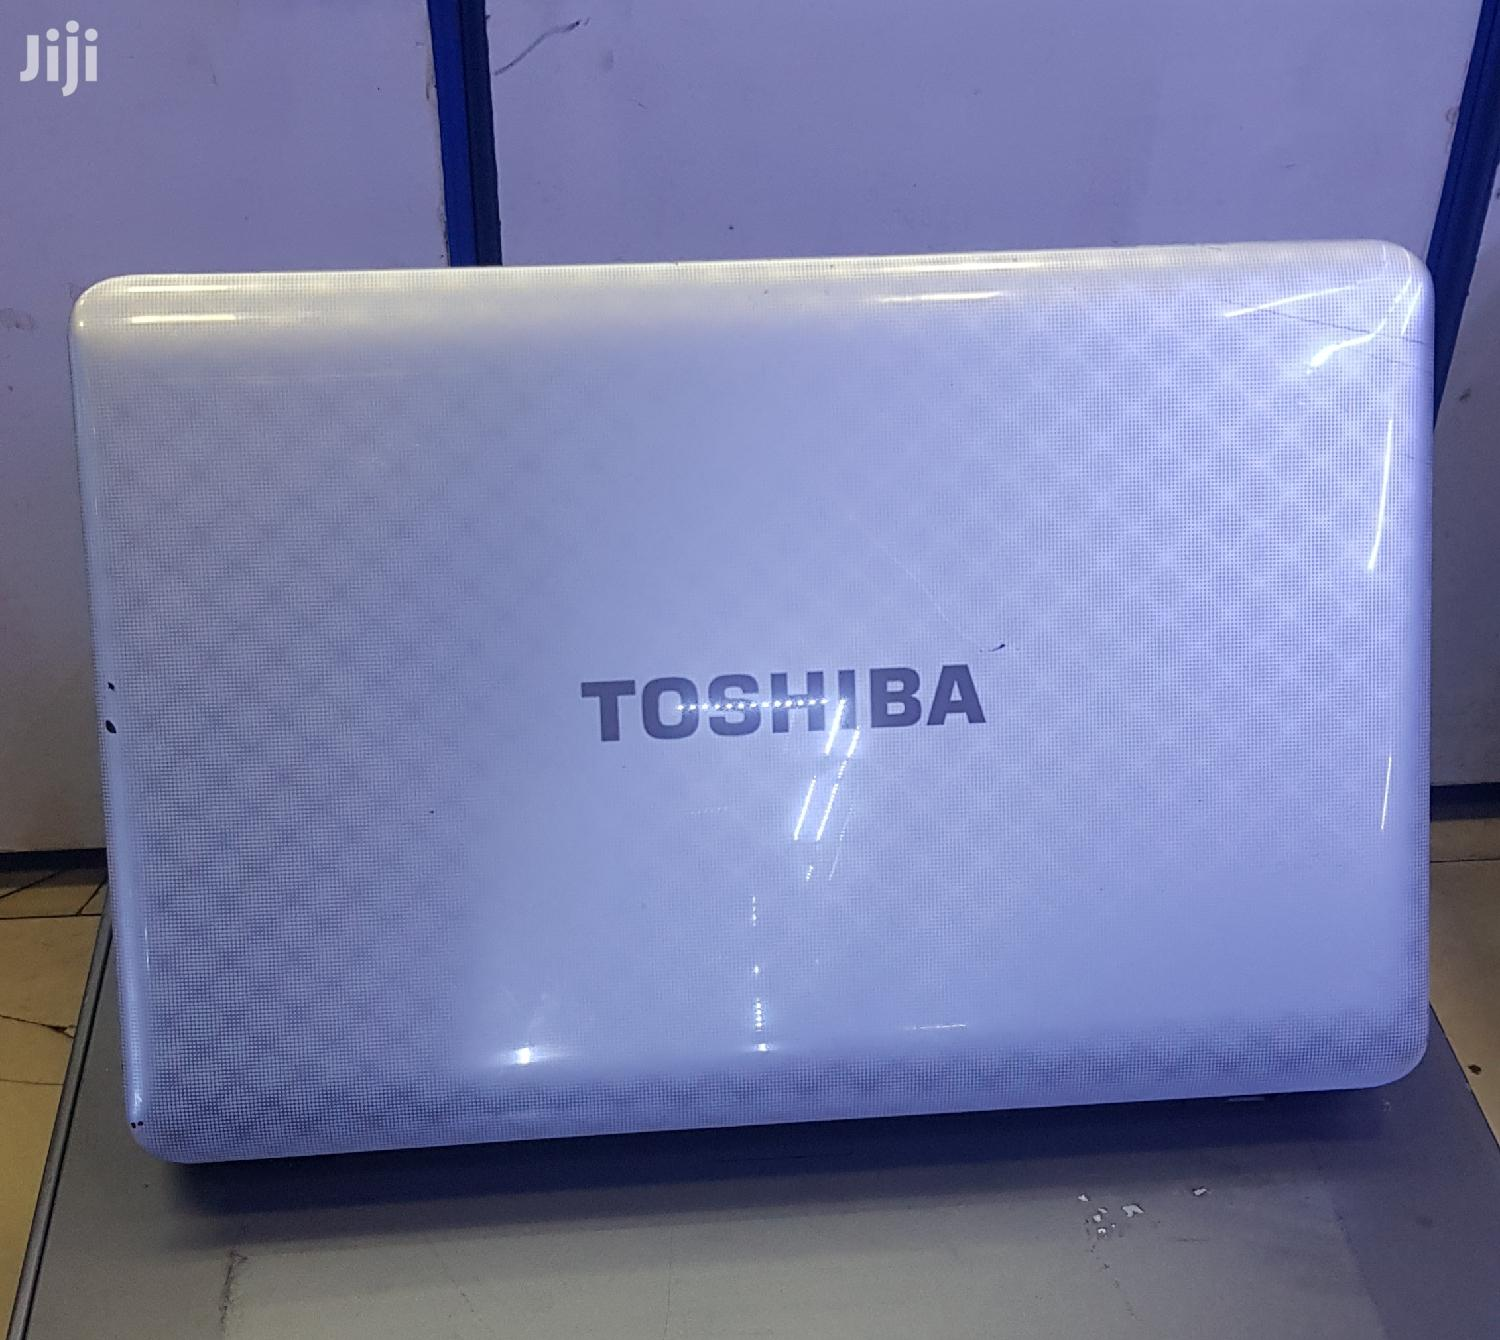 Laptop Toshiba Satellite S50 4GB Intel Core i3 HDD 320GB | Laptops & Computers for sale in Kampala, Central Region, Uganda